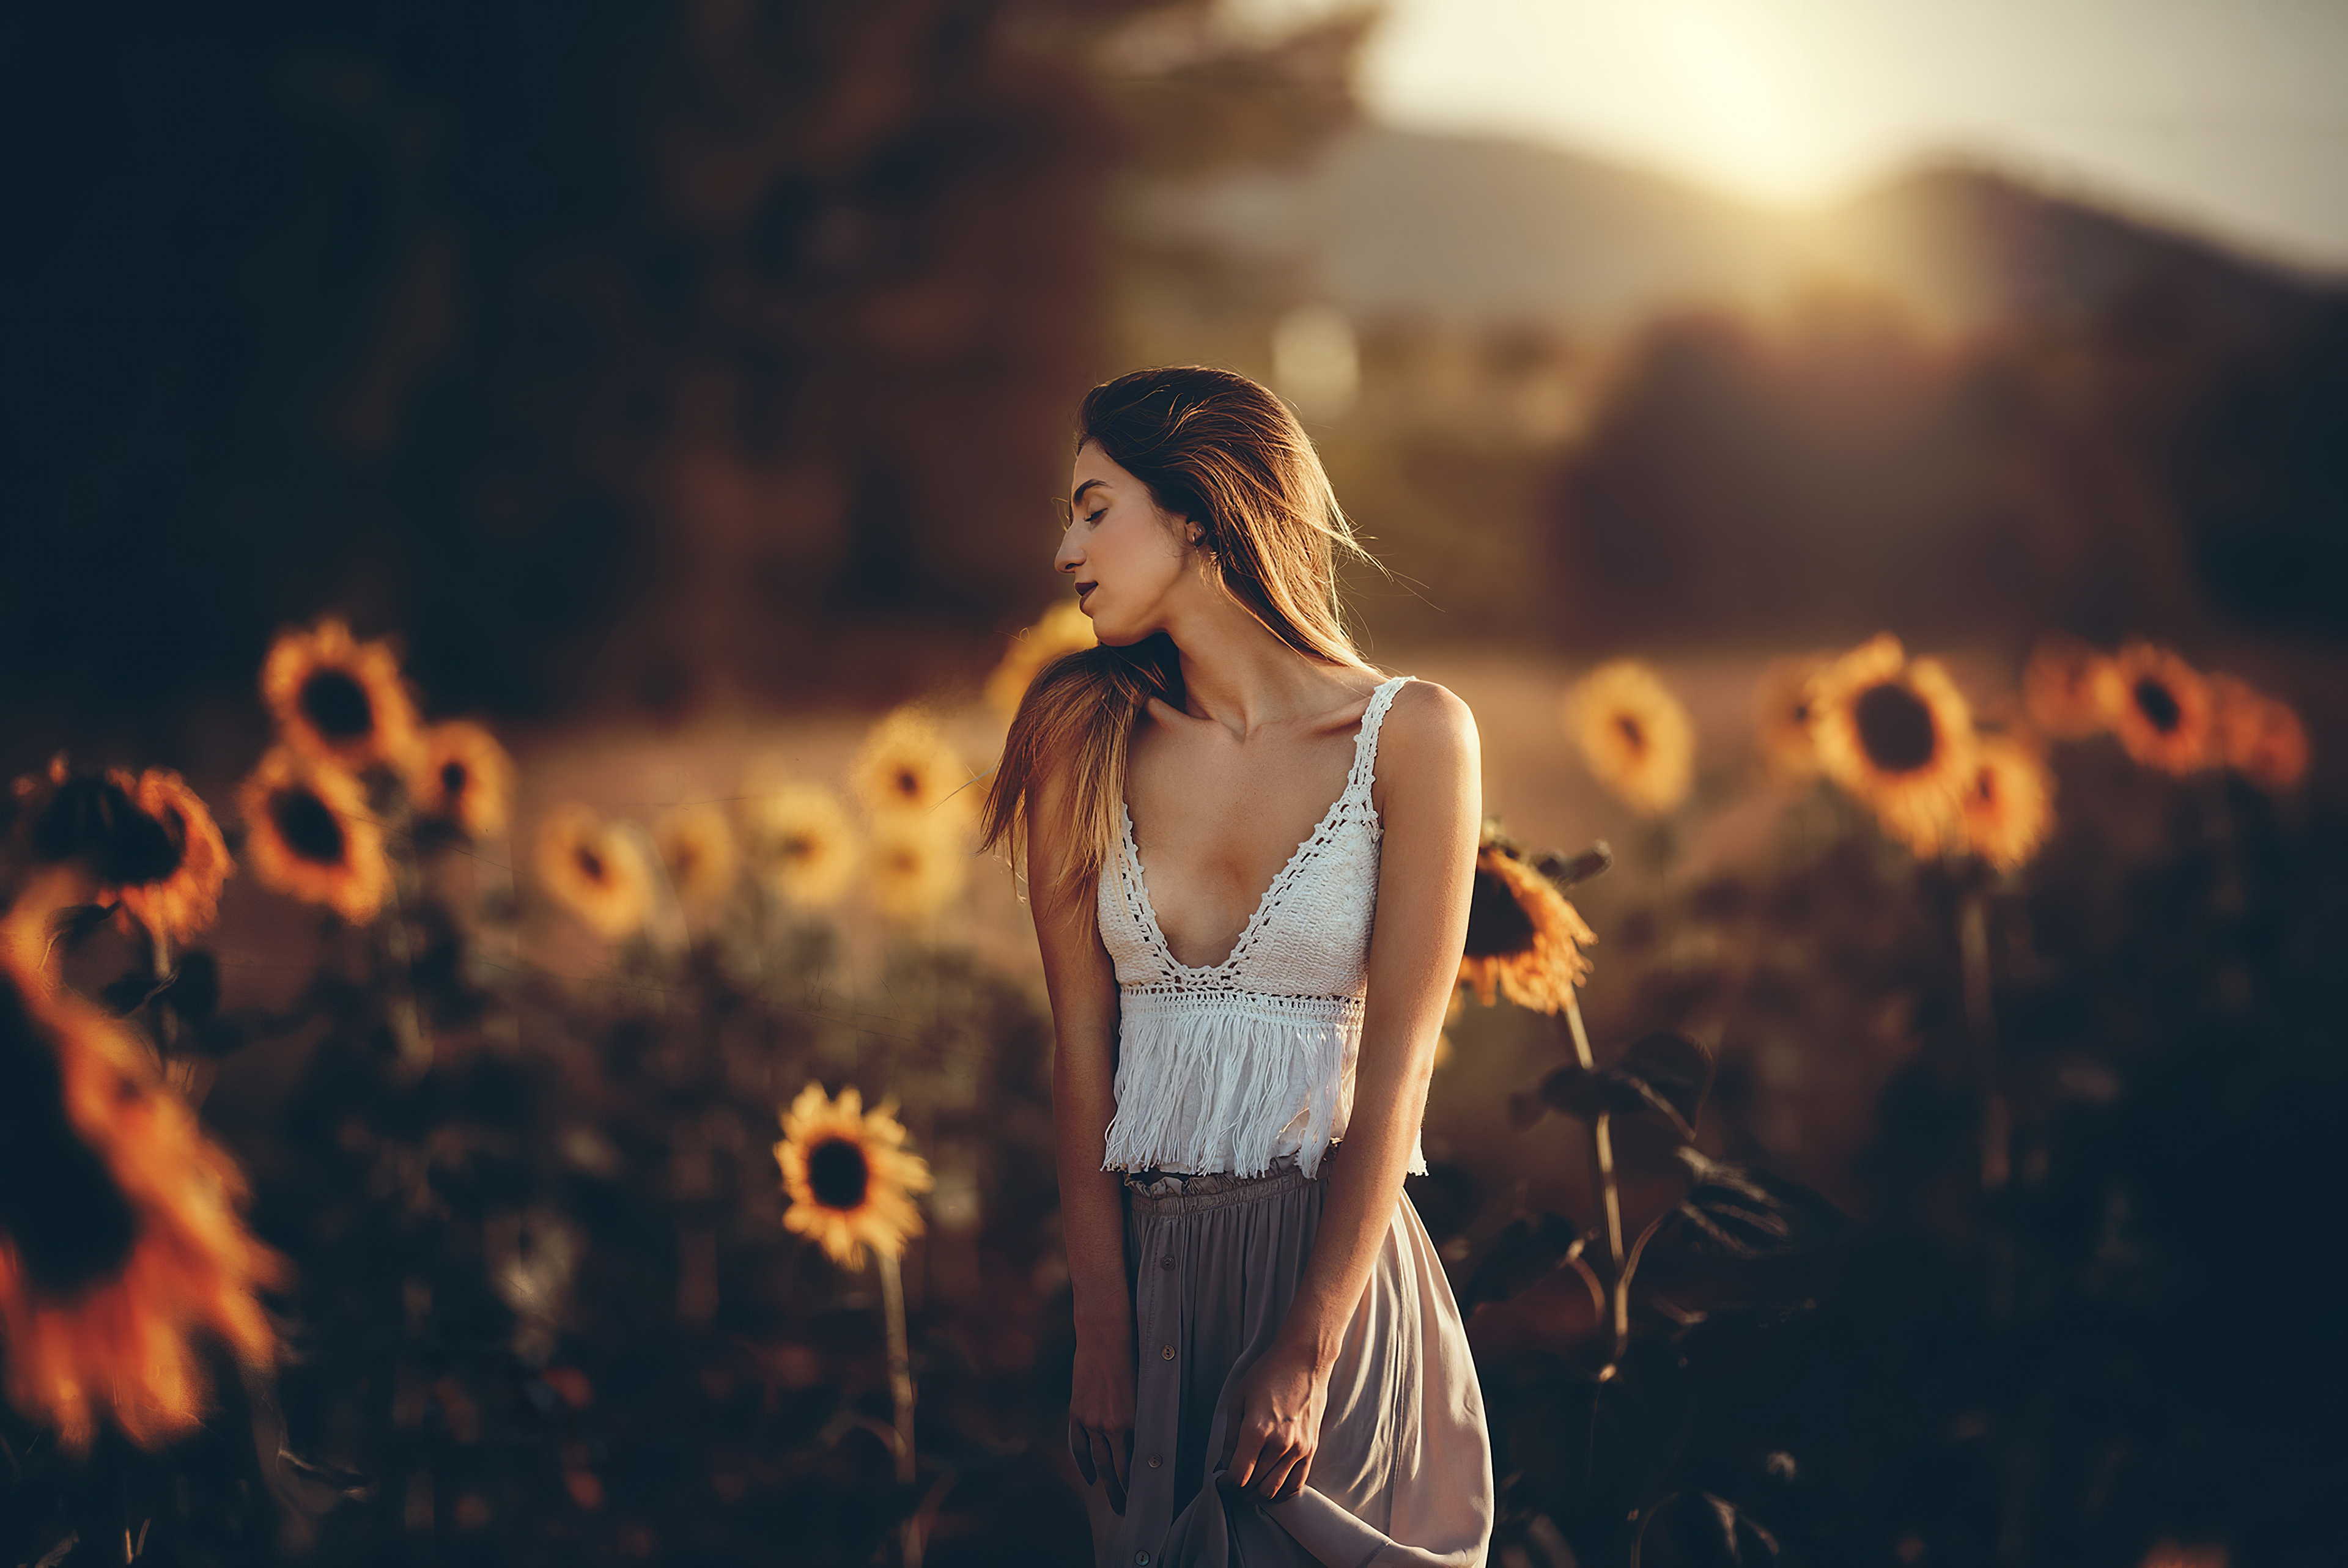 Girl Sunflower Field 4k Hd Girls 4k Wallpapers Images Backgrounds Photos And Pictures